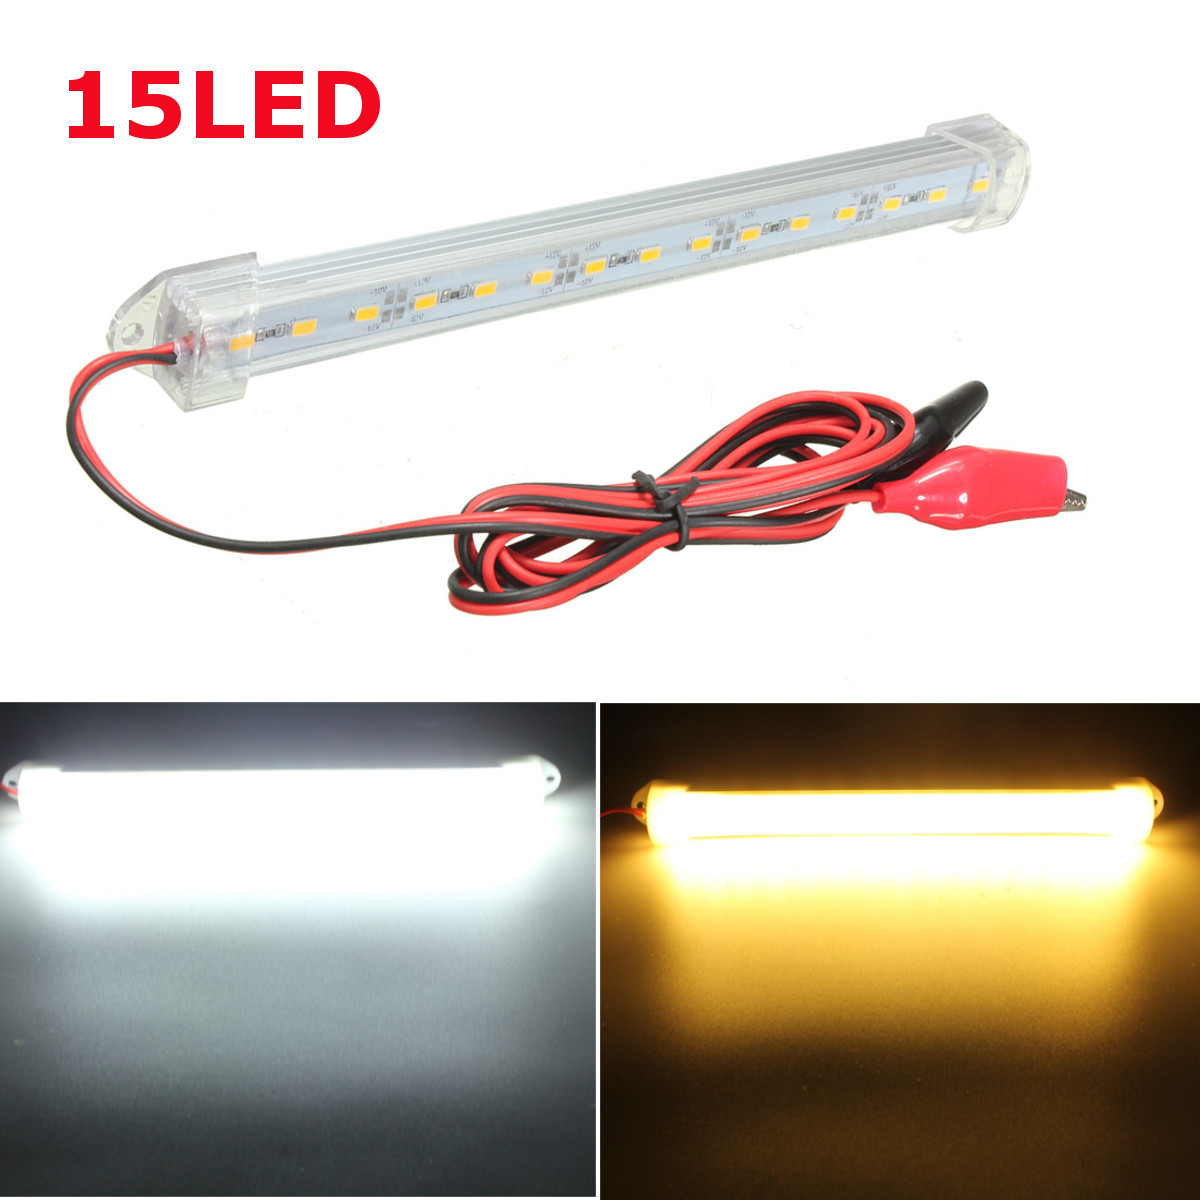 new 12v led 150cm car interior light bar tube strip lamp van boat caravan motorhome truck. Black Bedroom Furniture Sets. Home Design Ideas